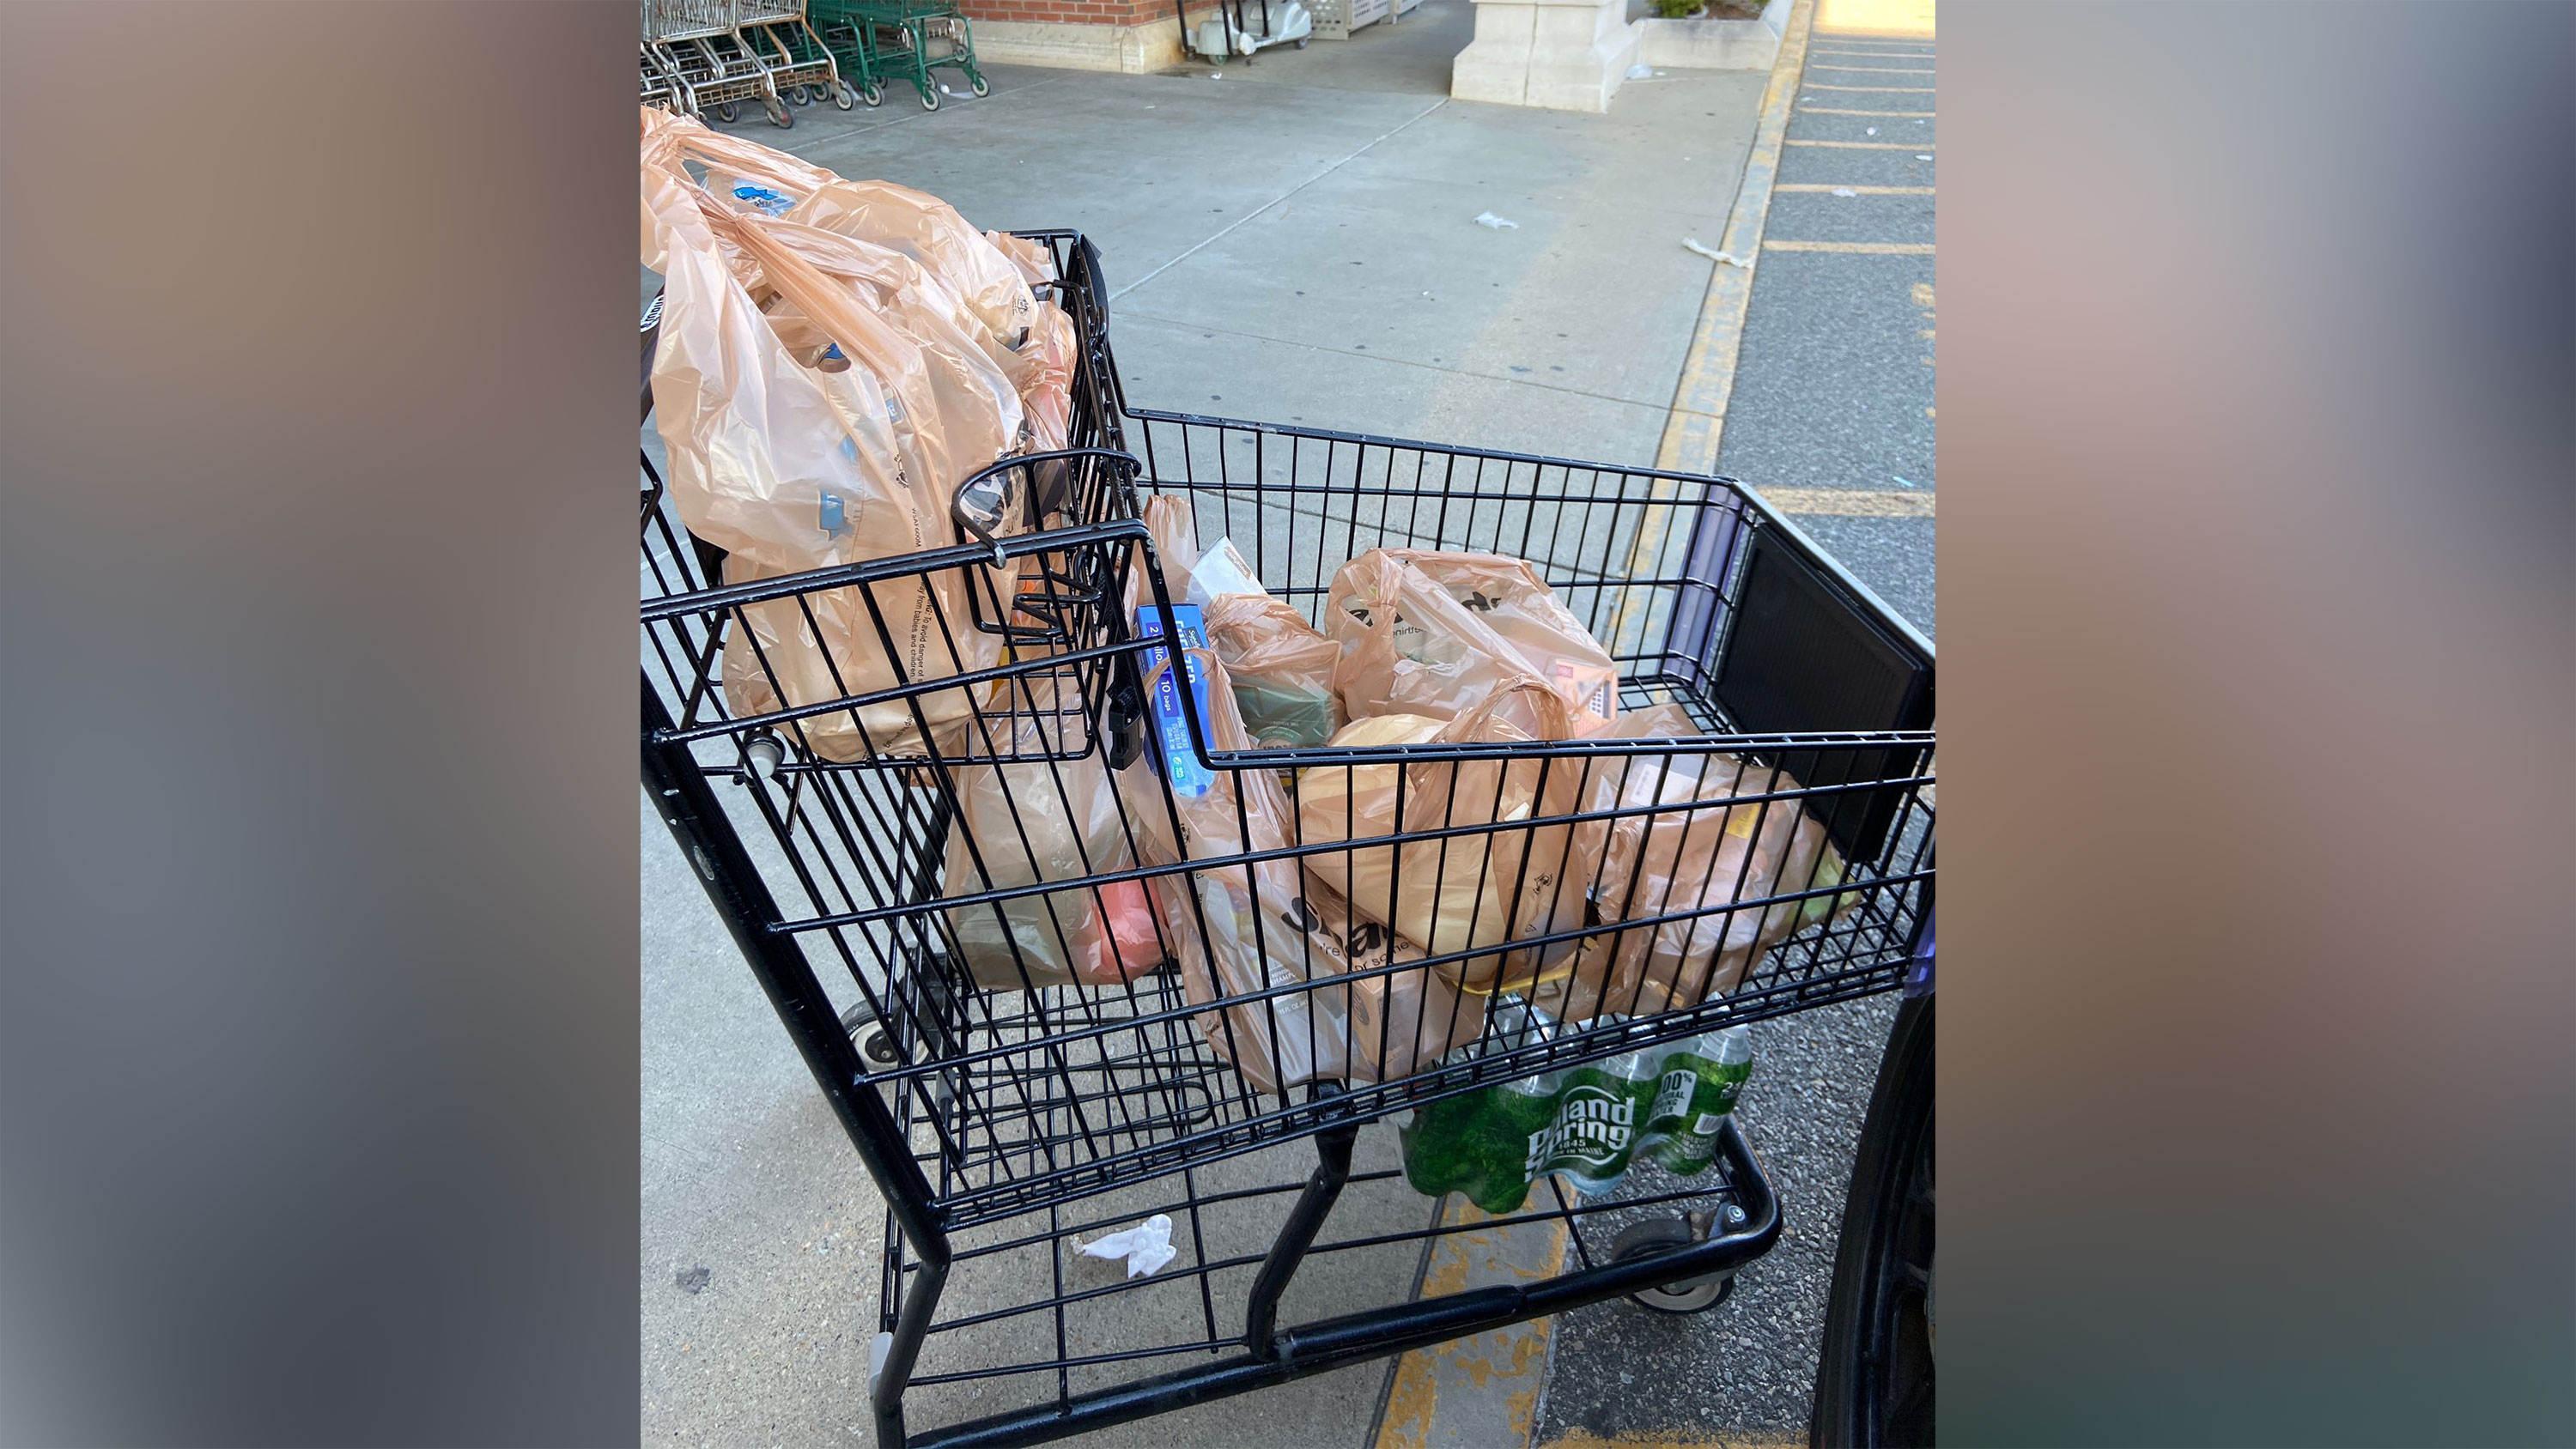 A Rhode Island police officer bought groceries for an elderly shut-in who had no food at home